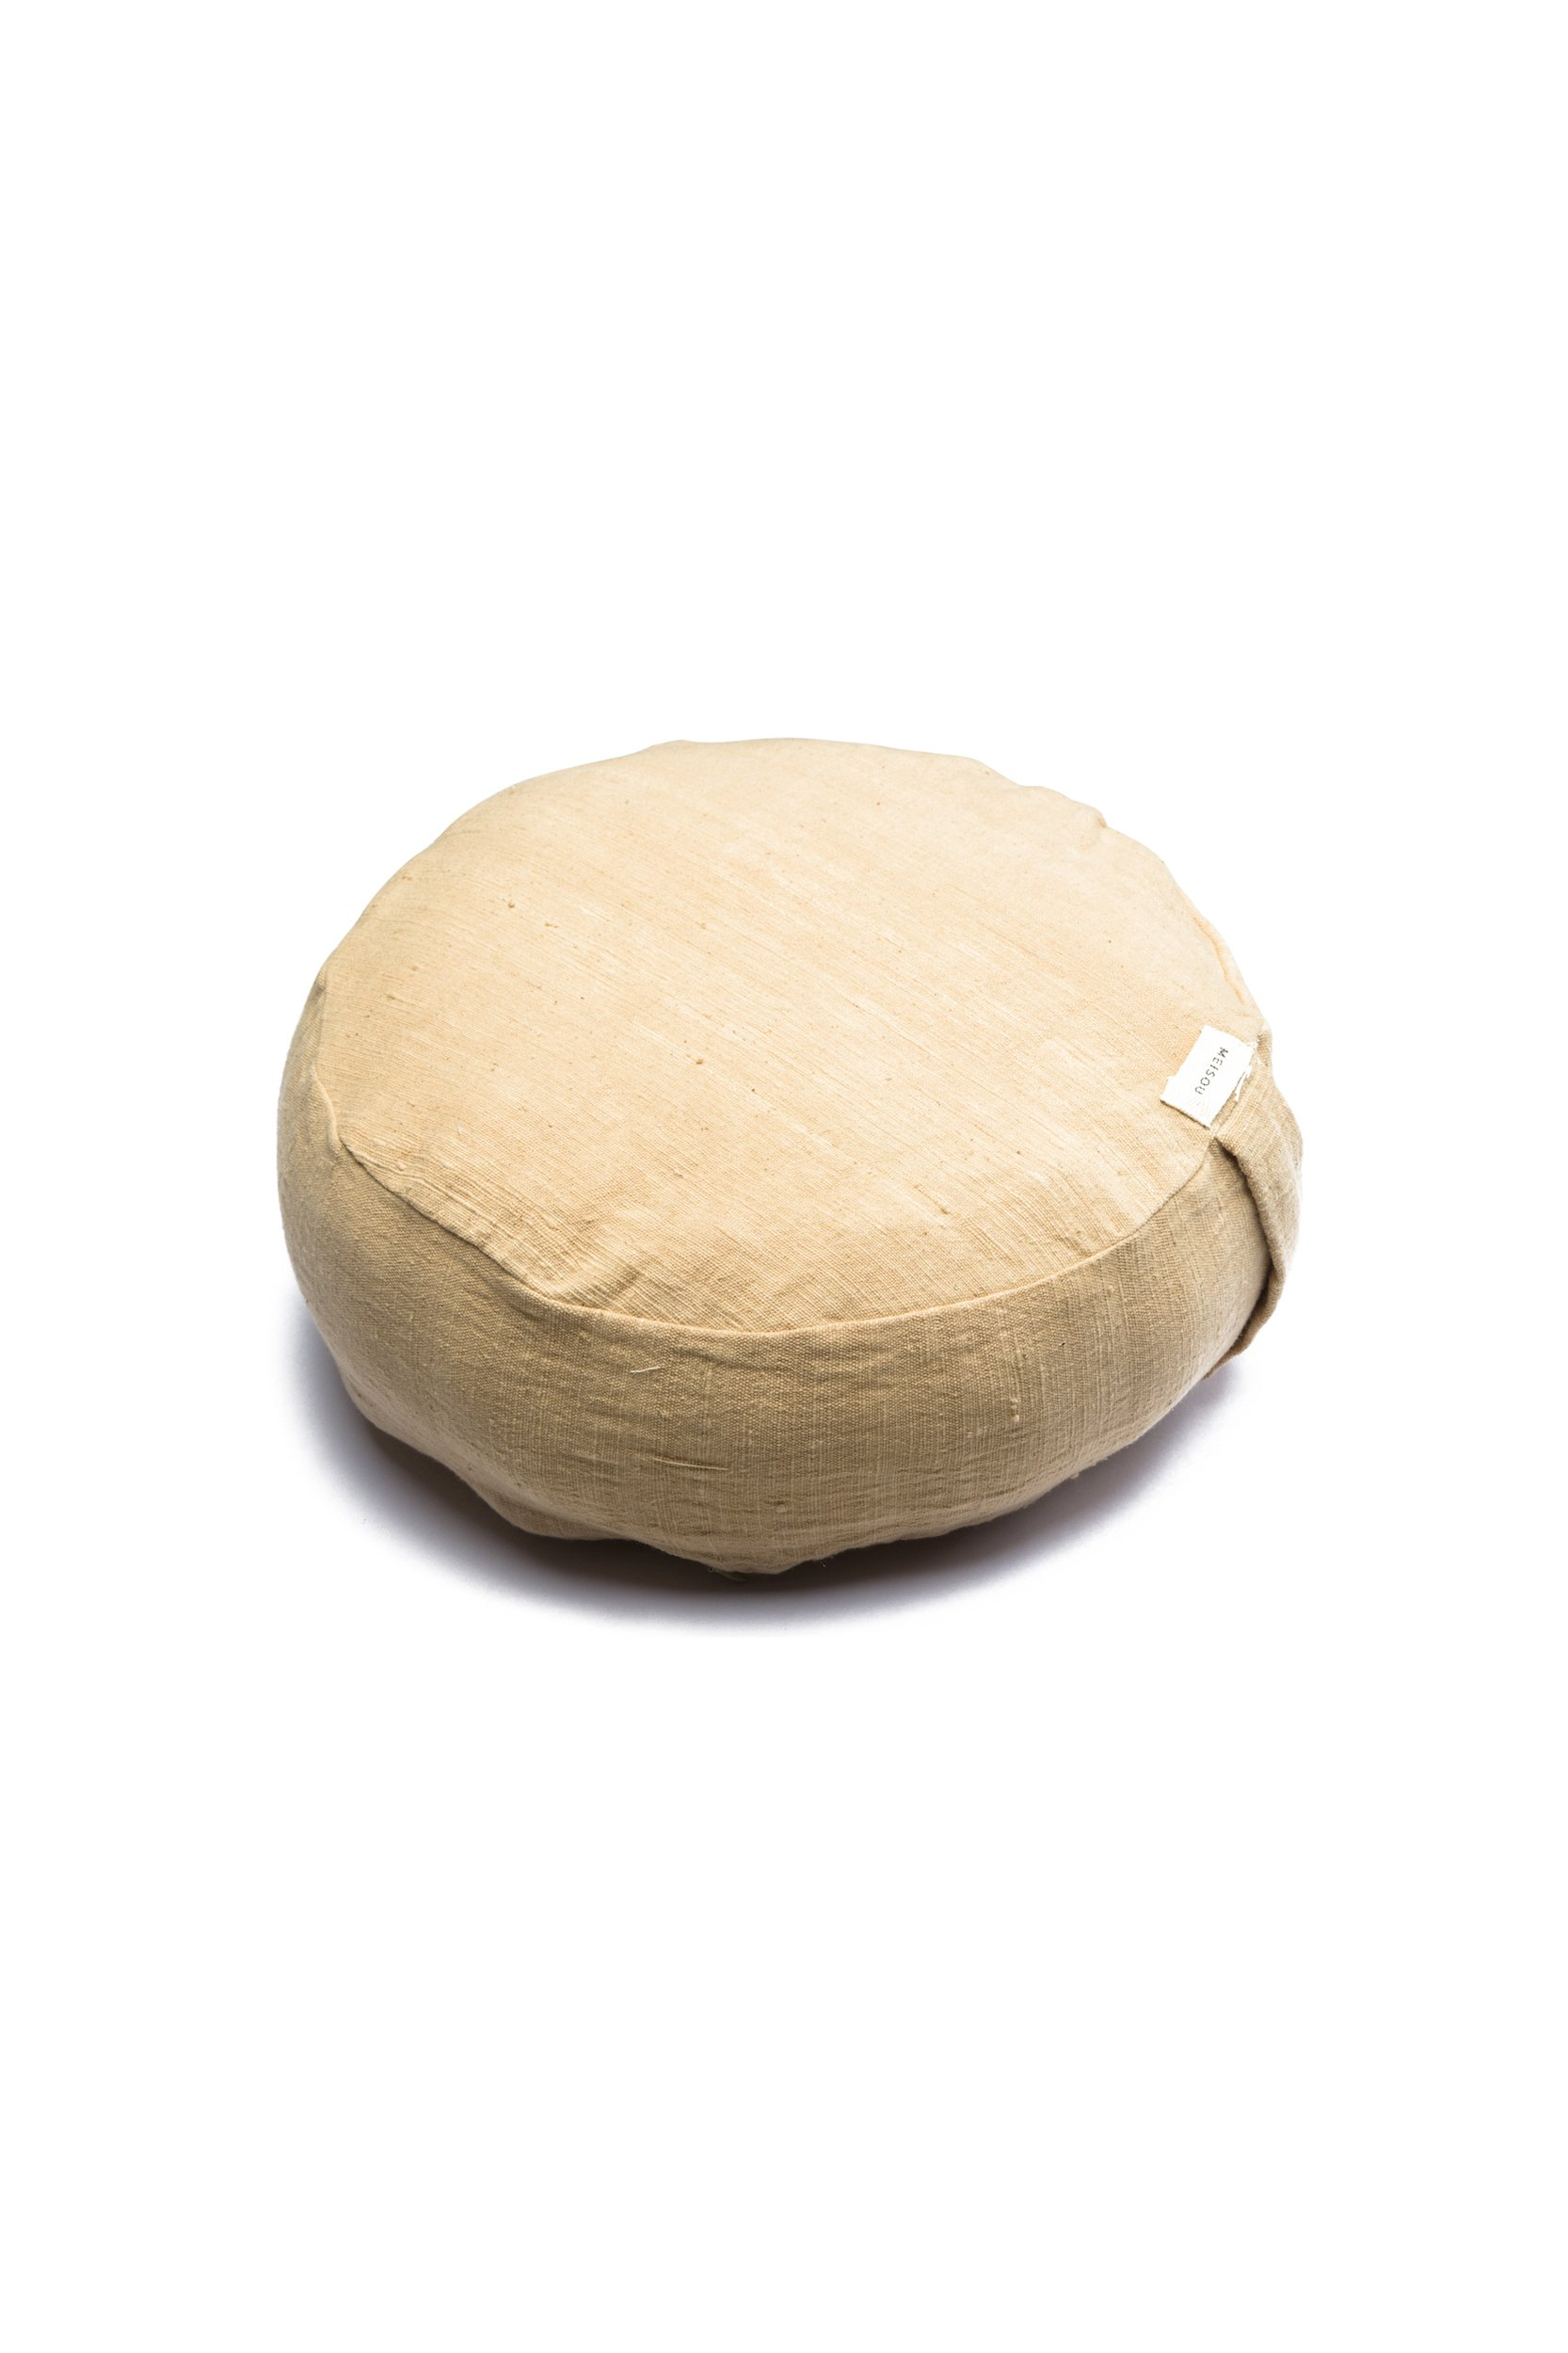 Organic Meditation Cushion (Beige)